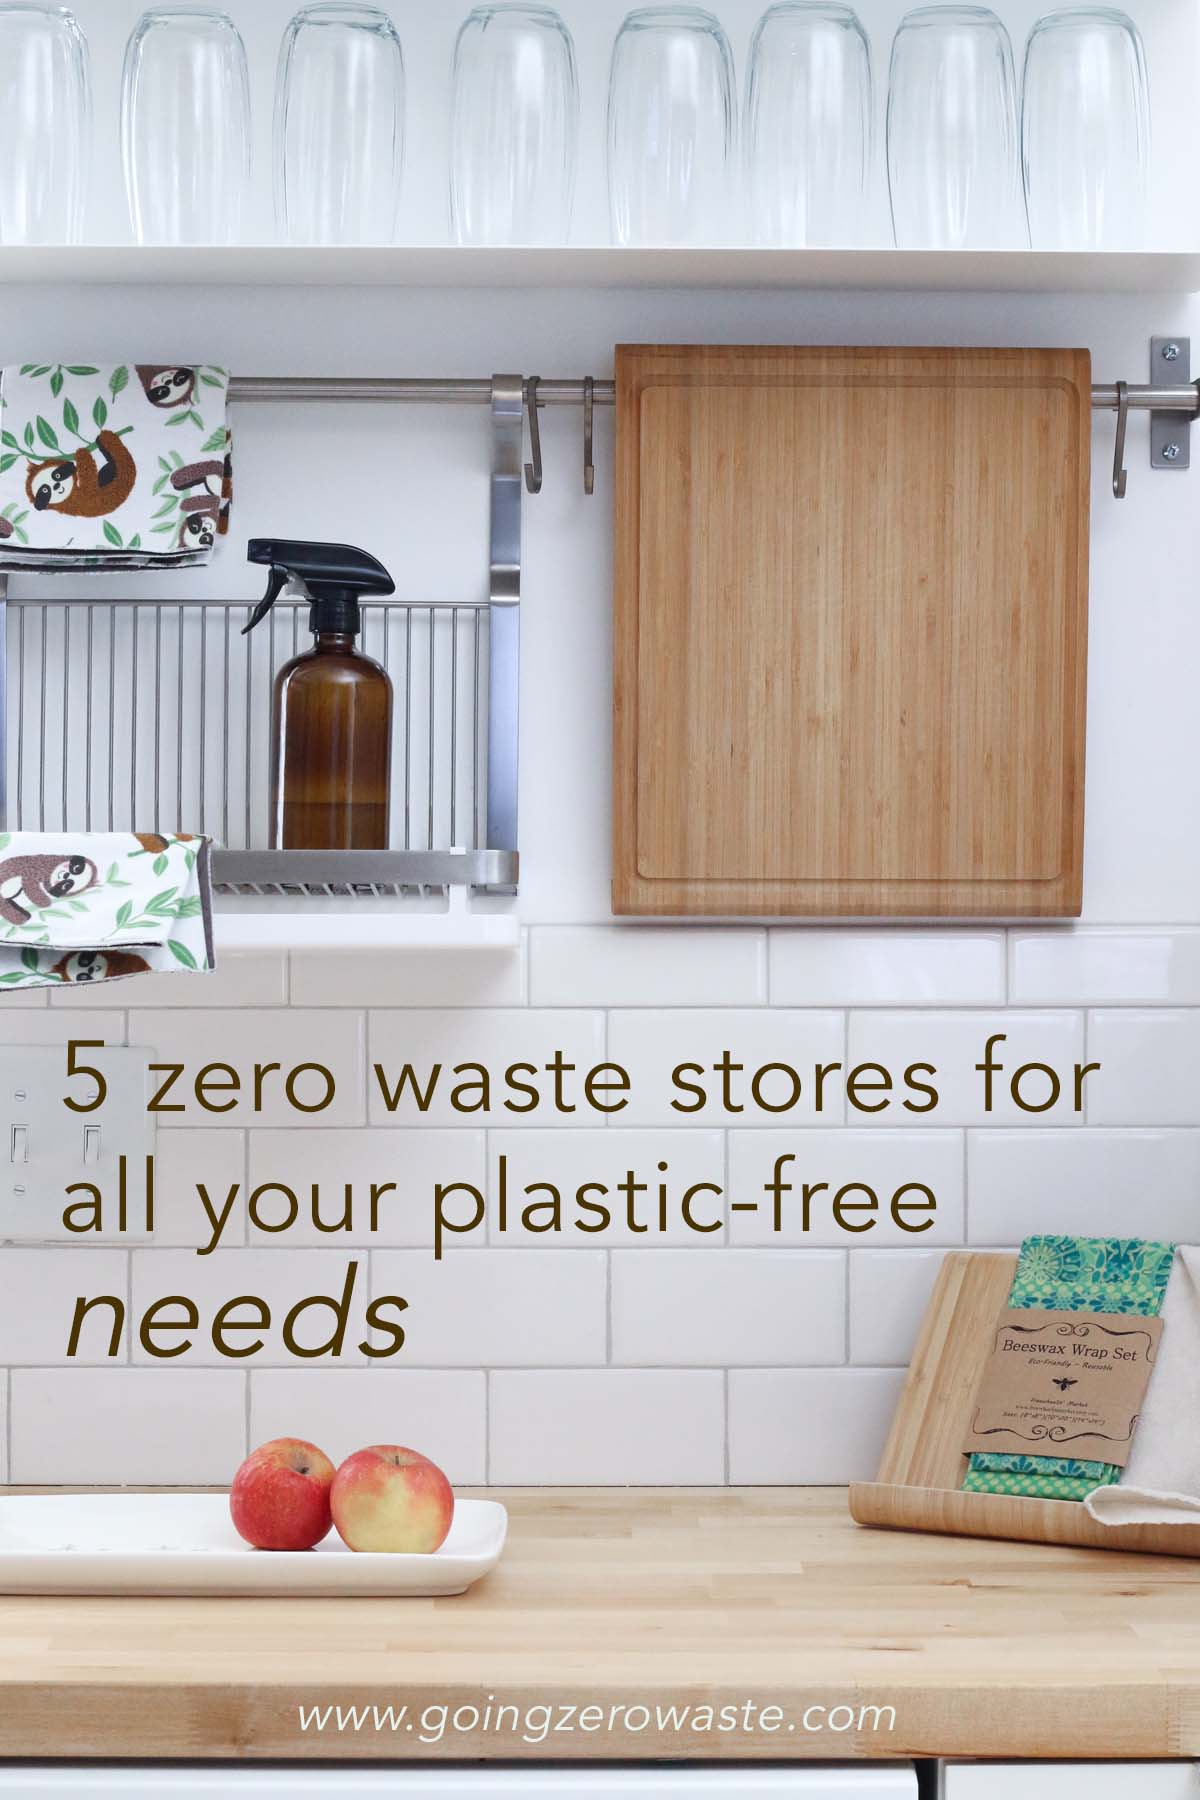 Three zero waste shops for all your plastic free needs from www.goingzerowaste.com #zerowaste #ecofriendly #zerowasteshops